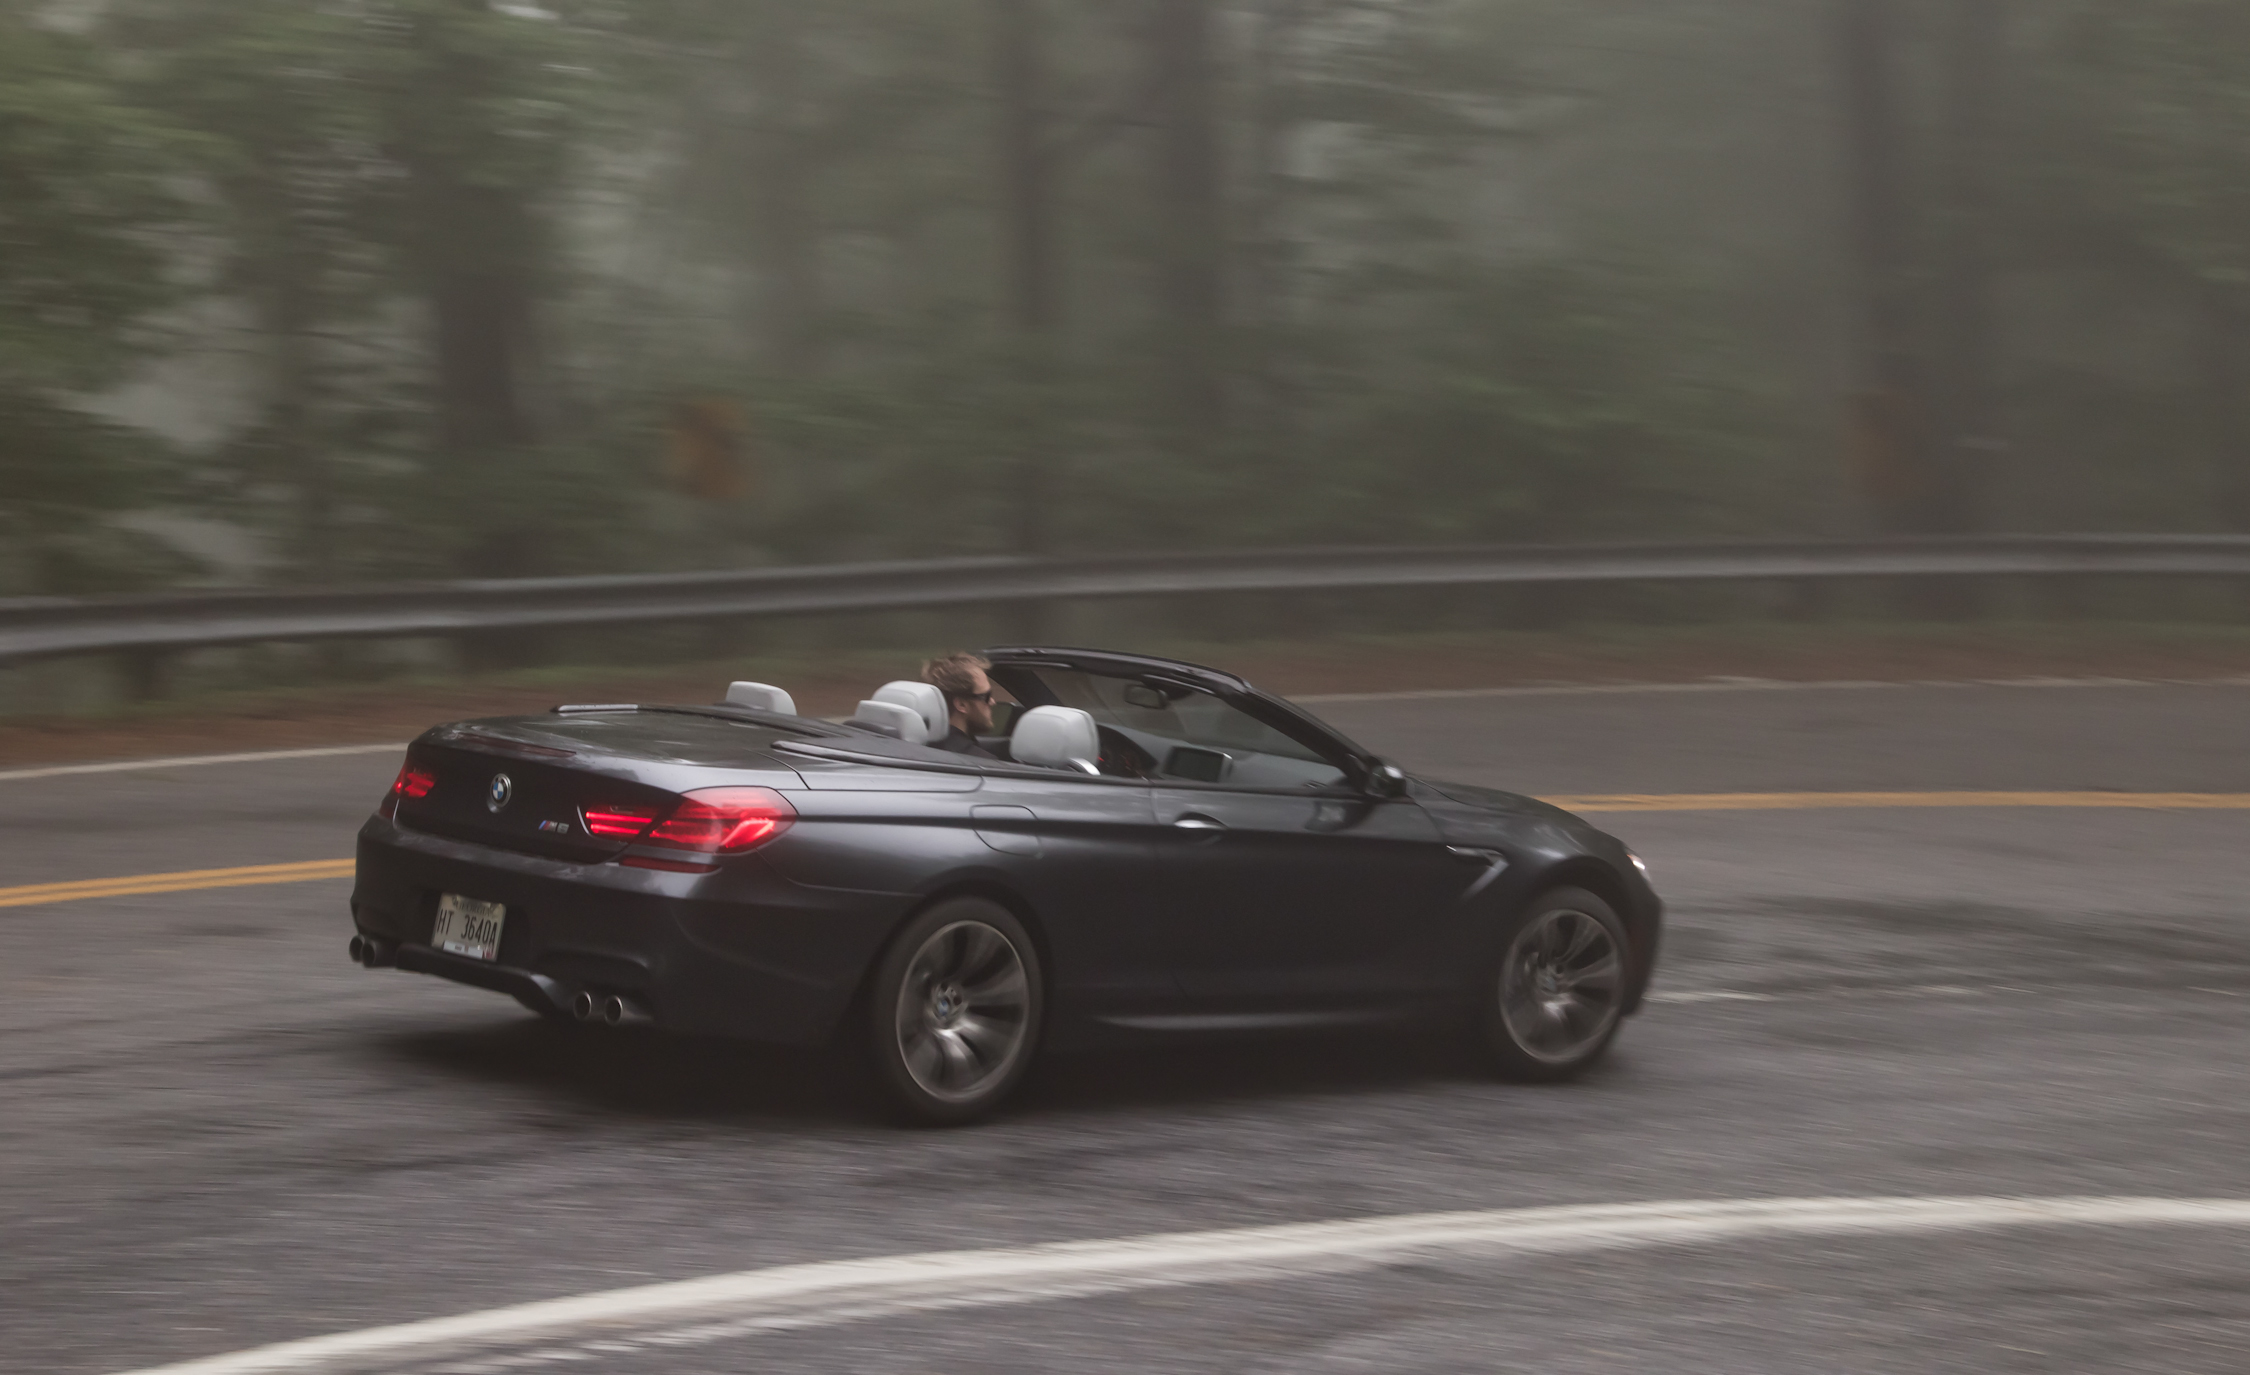 2012 BMW M6 Convertible Test Drive Rear And Side View (Photo 24 of 30)